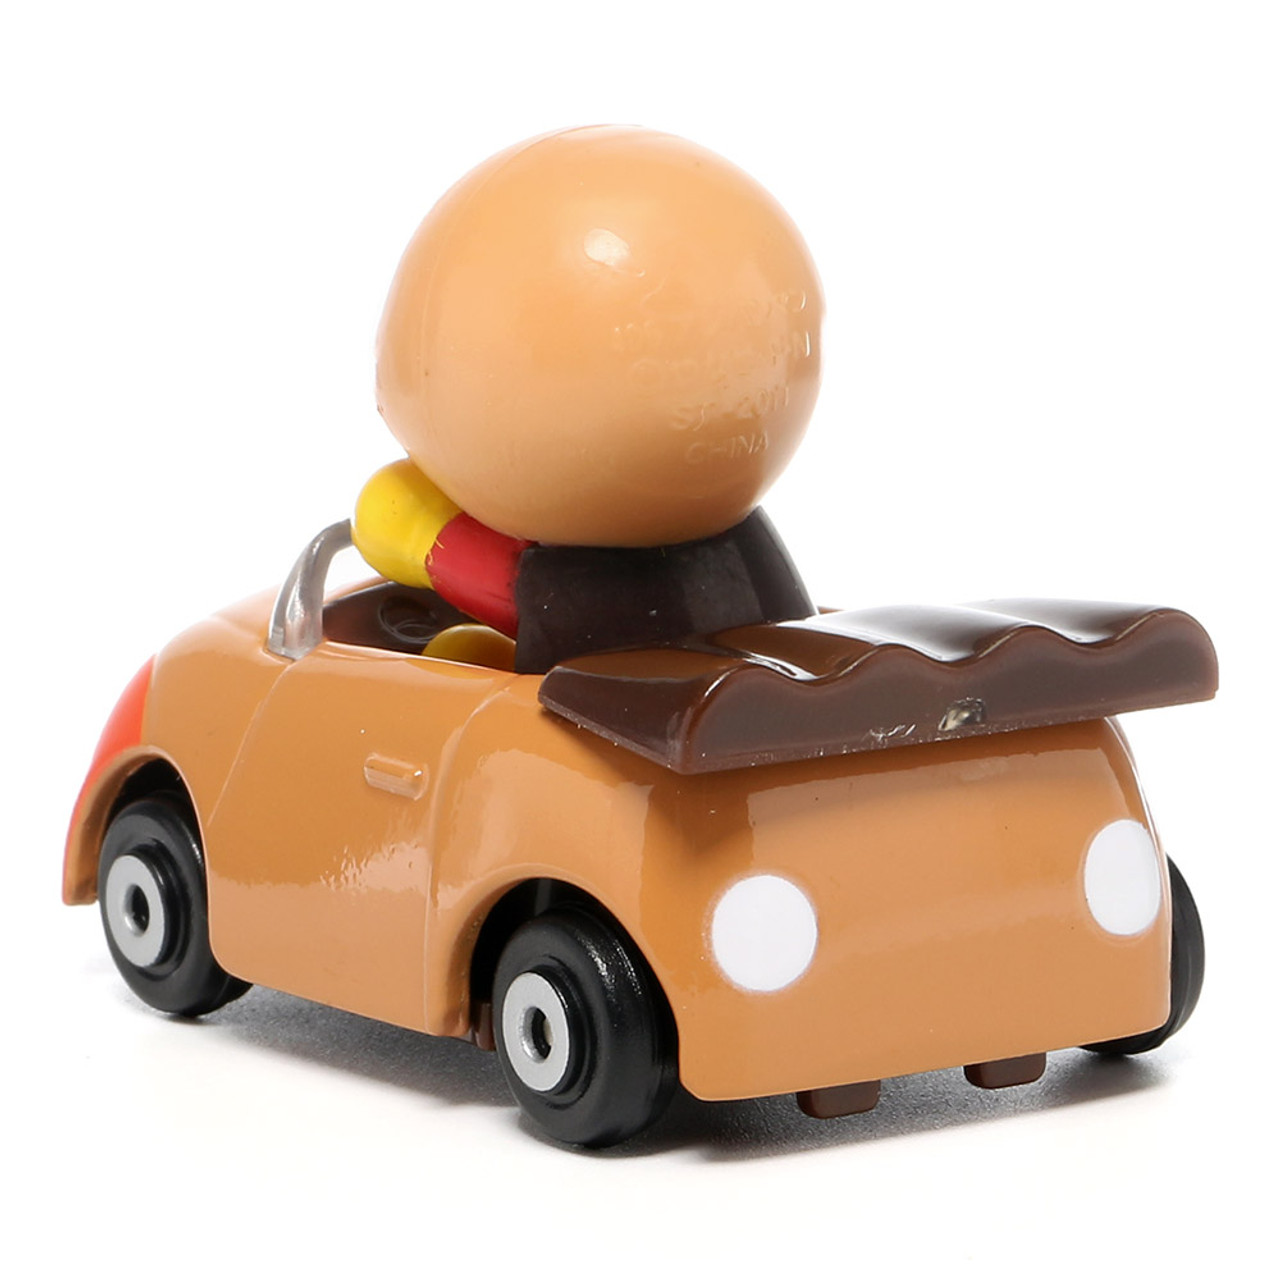 Sega Toys Anpanman Museum Go Go Mini Vehicle Carry Hero - Anpanman Roadster ( Back View )